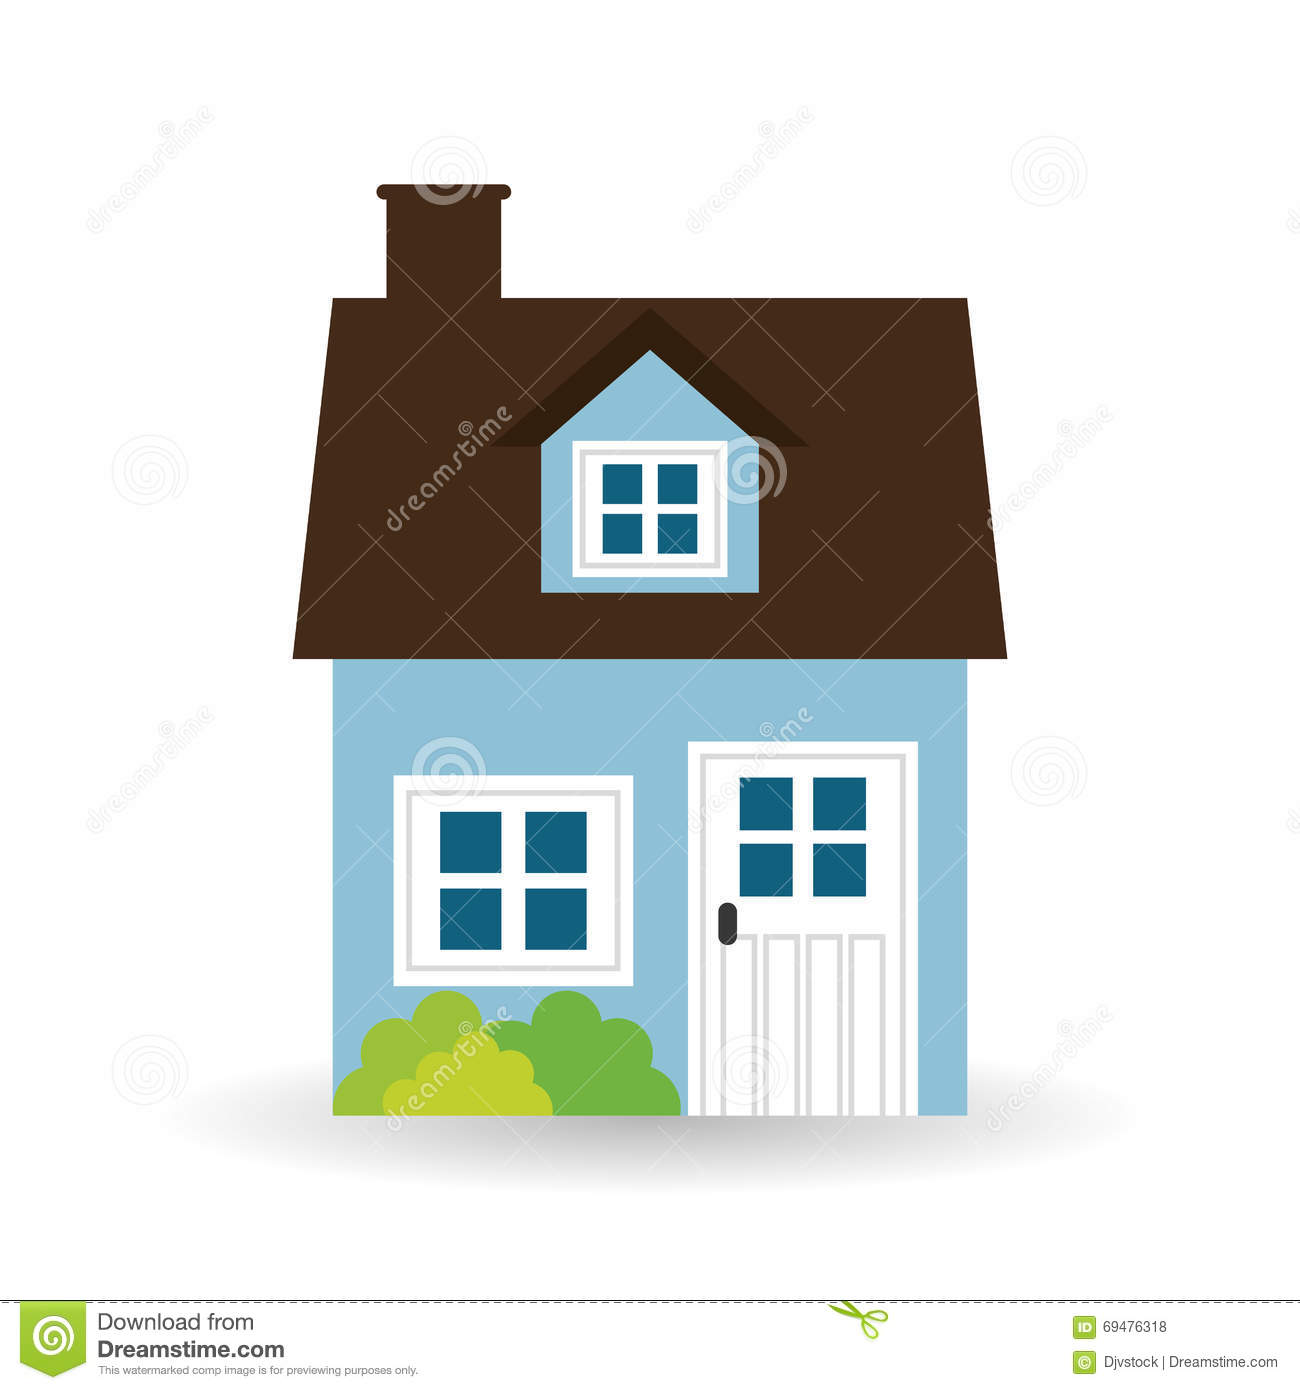 House icon design vector illustration stock vector for Graphic design house